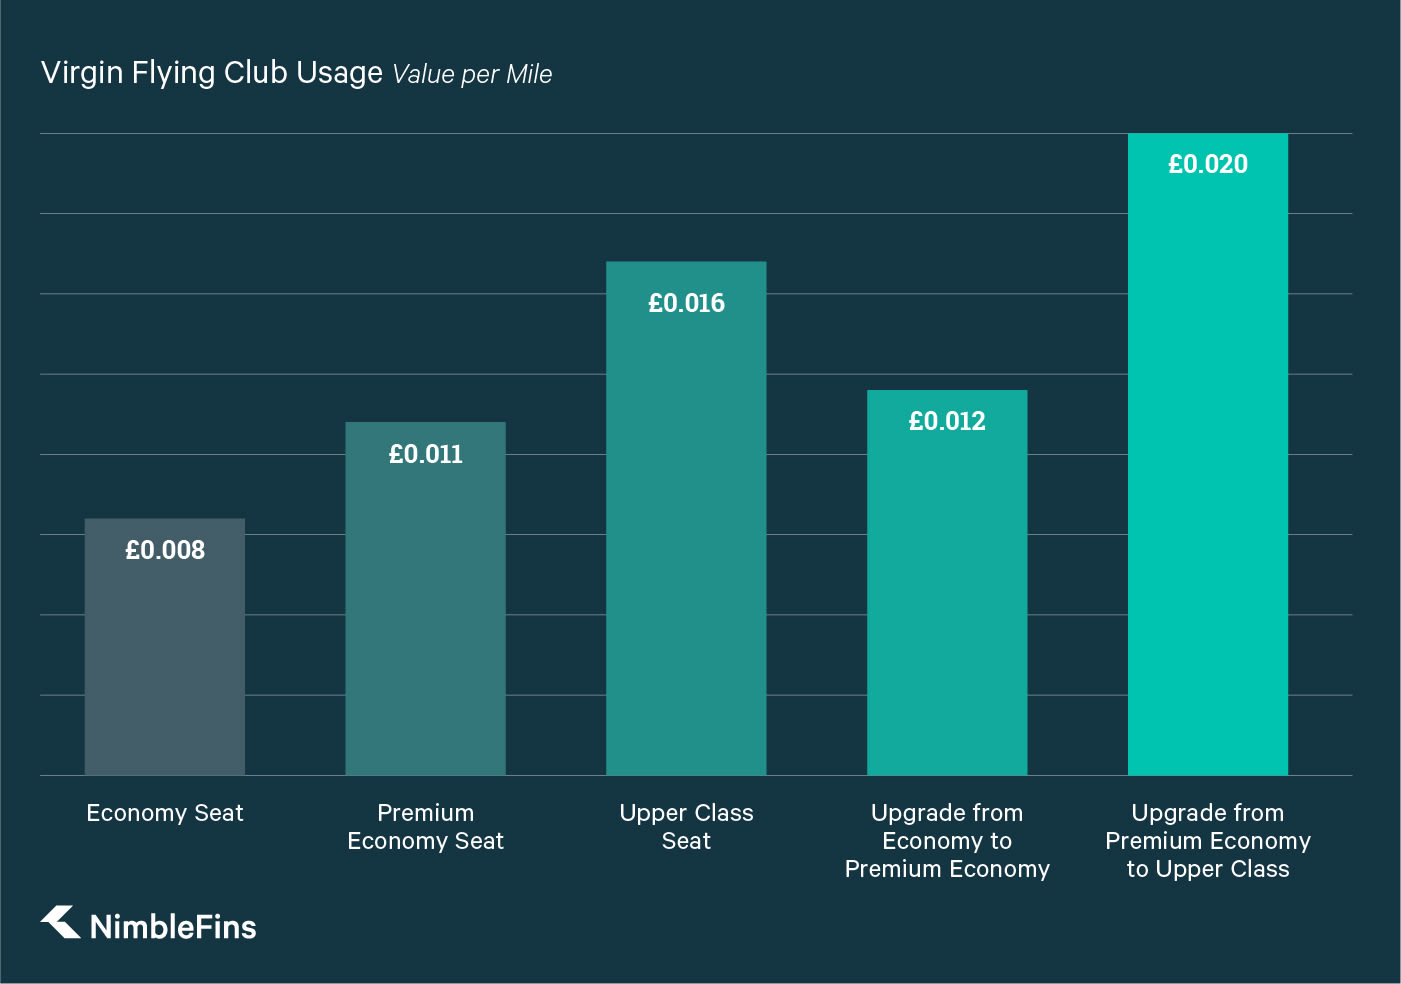 A chart showing the value of Virgin Flying Club Miles based on how you redeem them, seats or upgrades in Economy, Premium Economy, or Upper Class